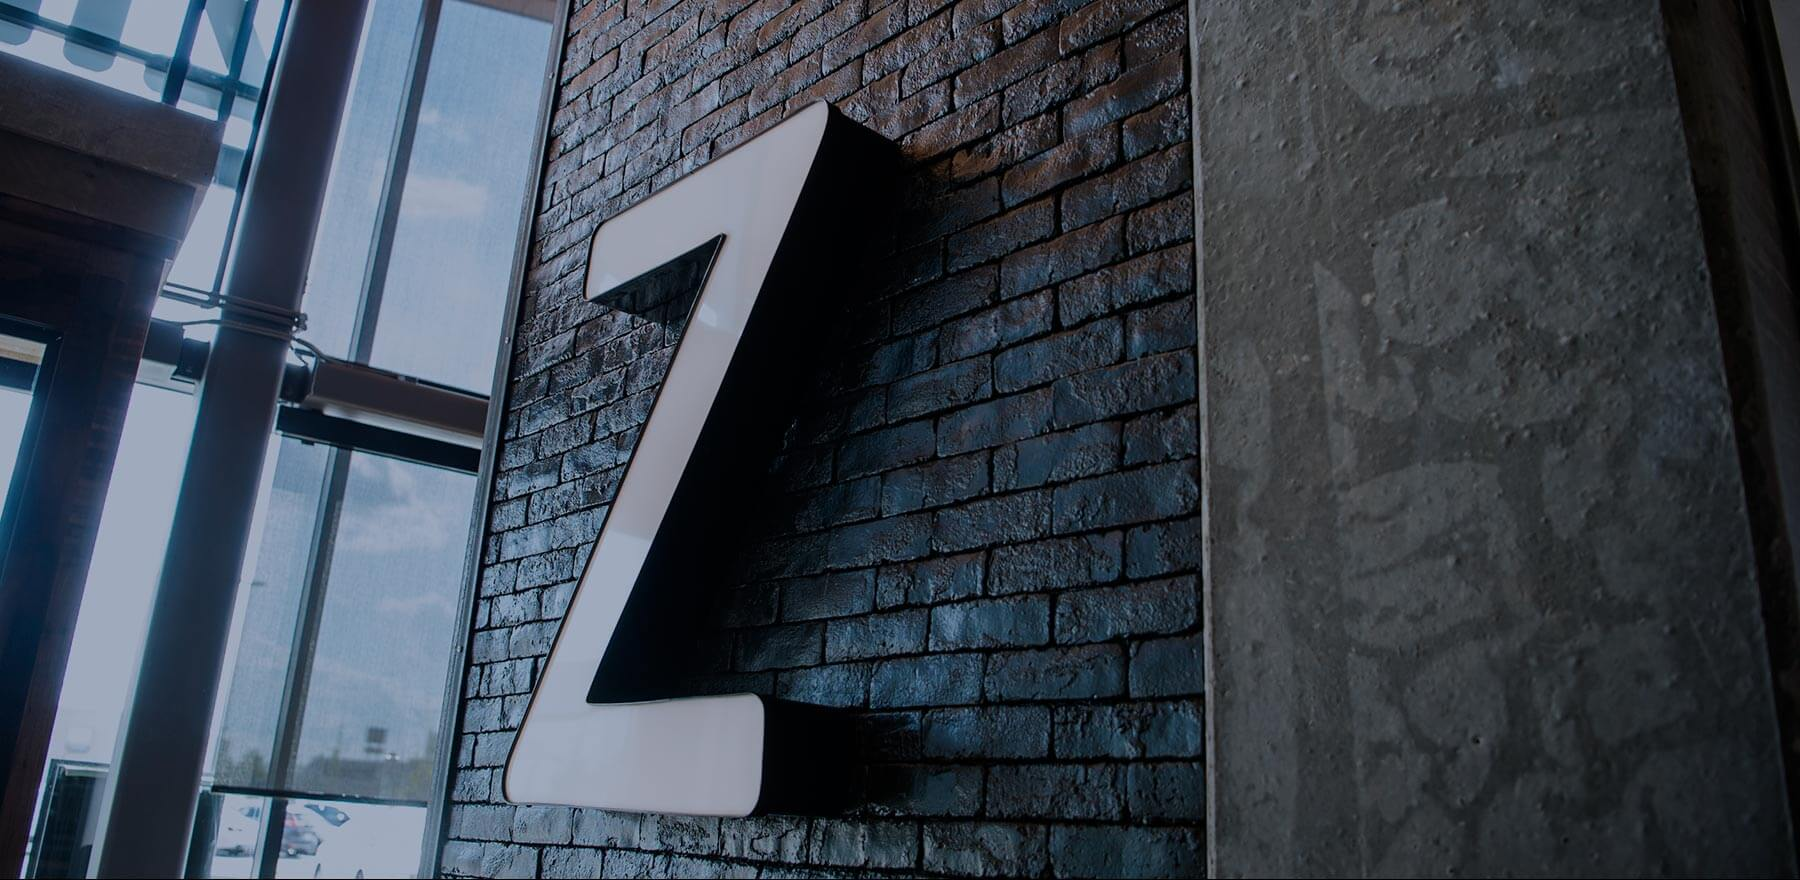 Zibo sign seen from the inside